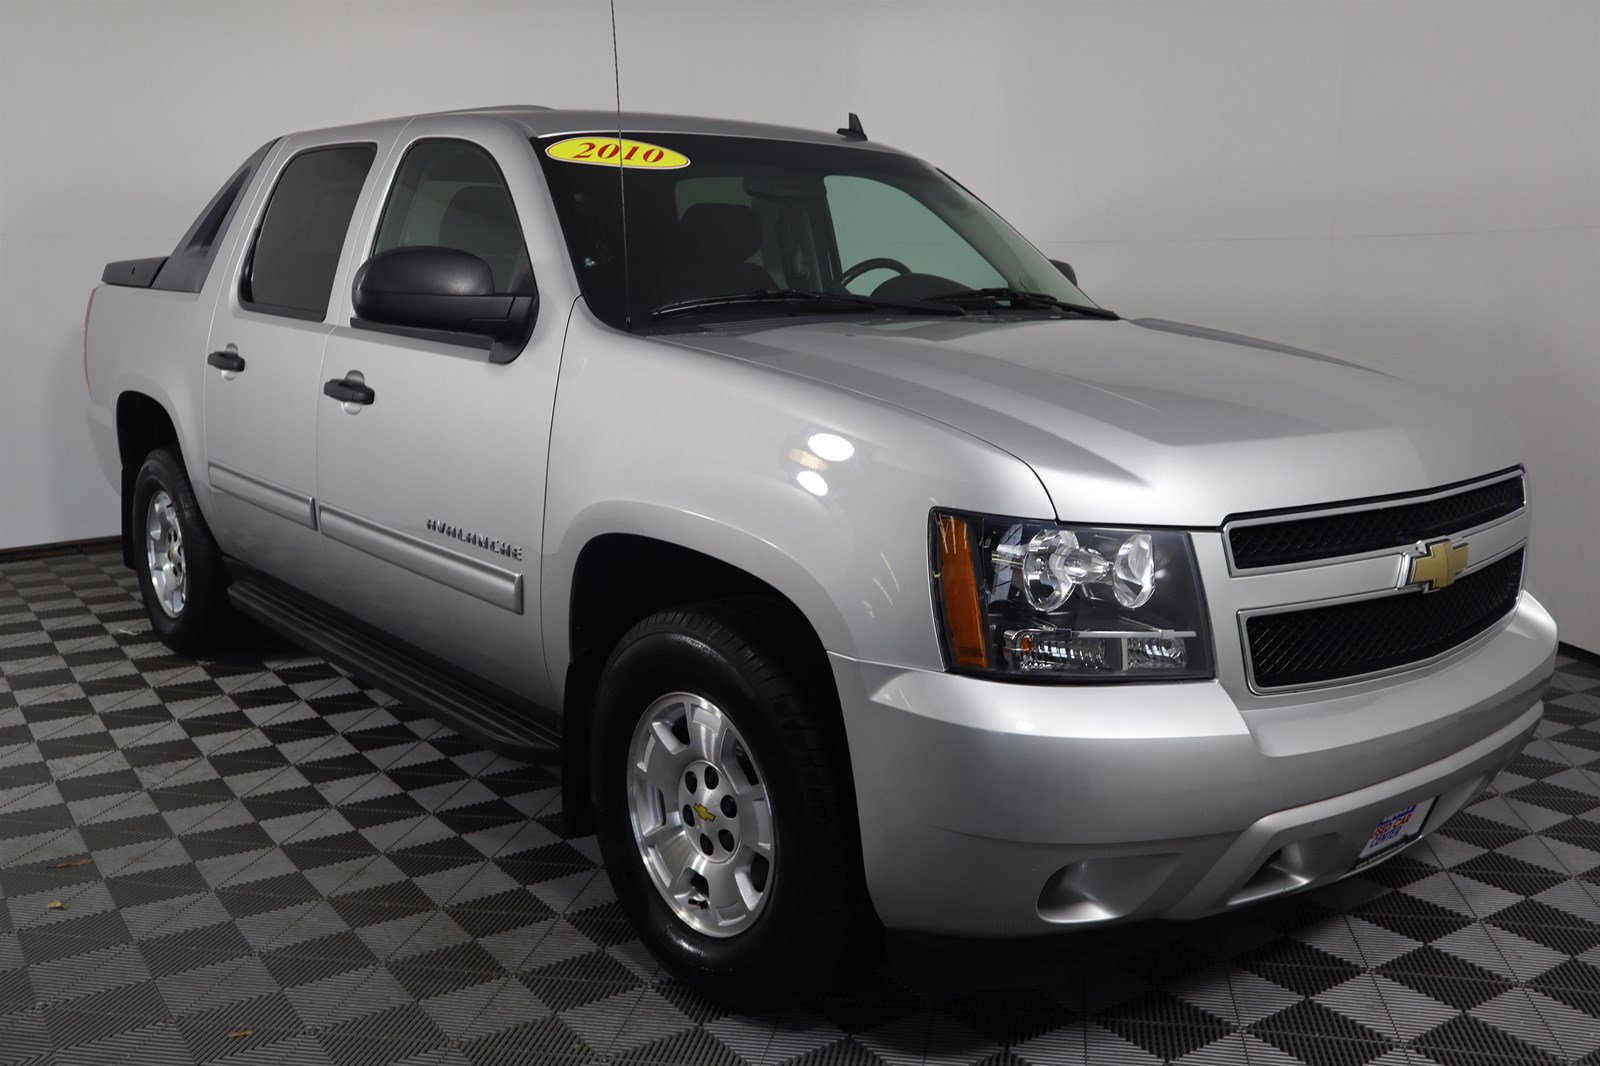 Pre-Owned 2010 Chevrolet Avalanche LS